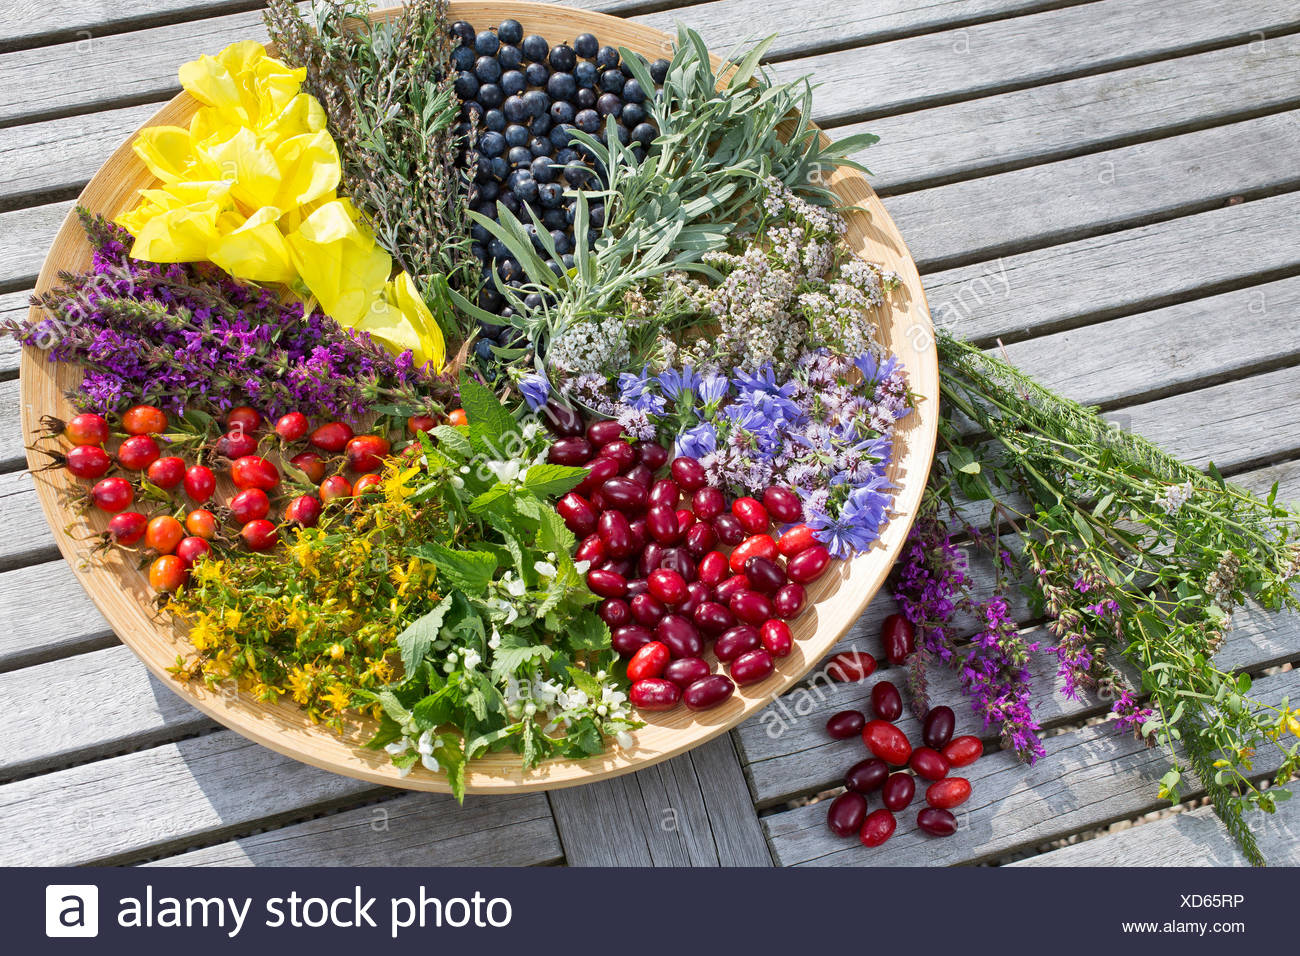 platter with late summer flowers and fruits , Germany - Stock Image